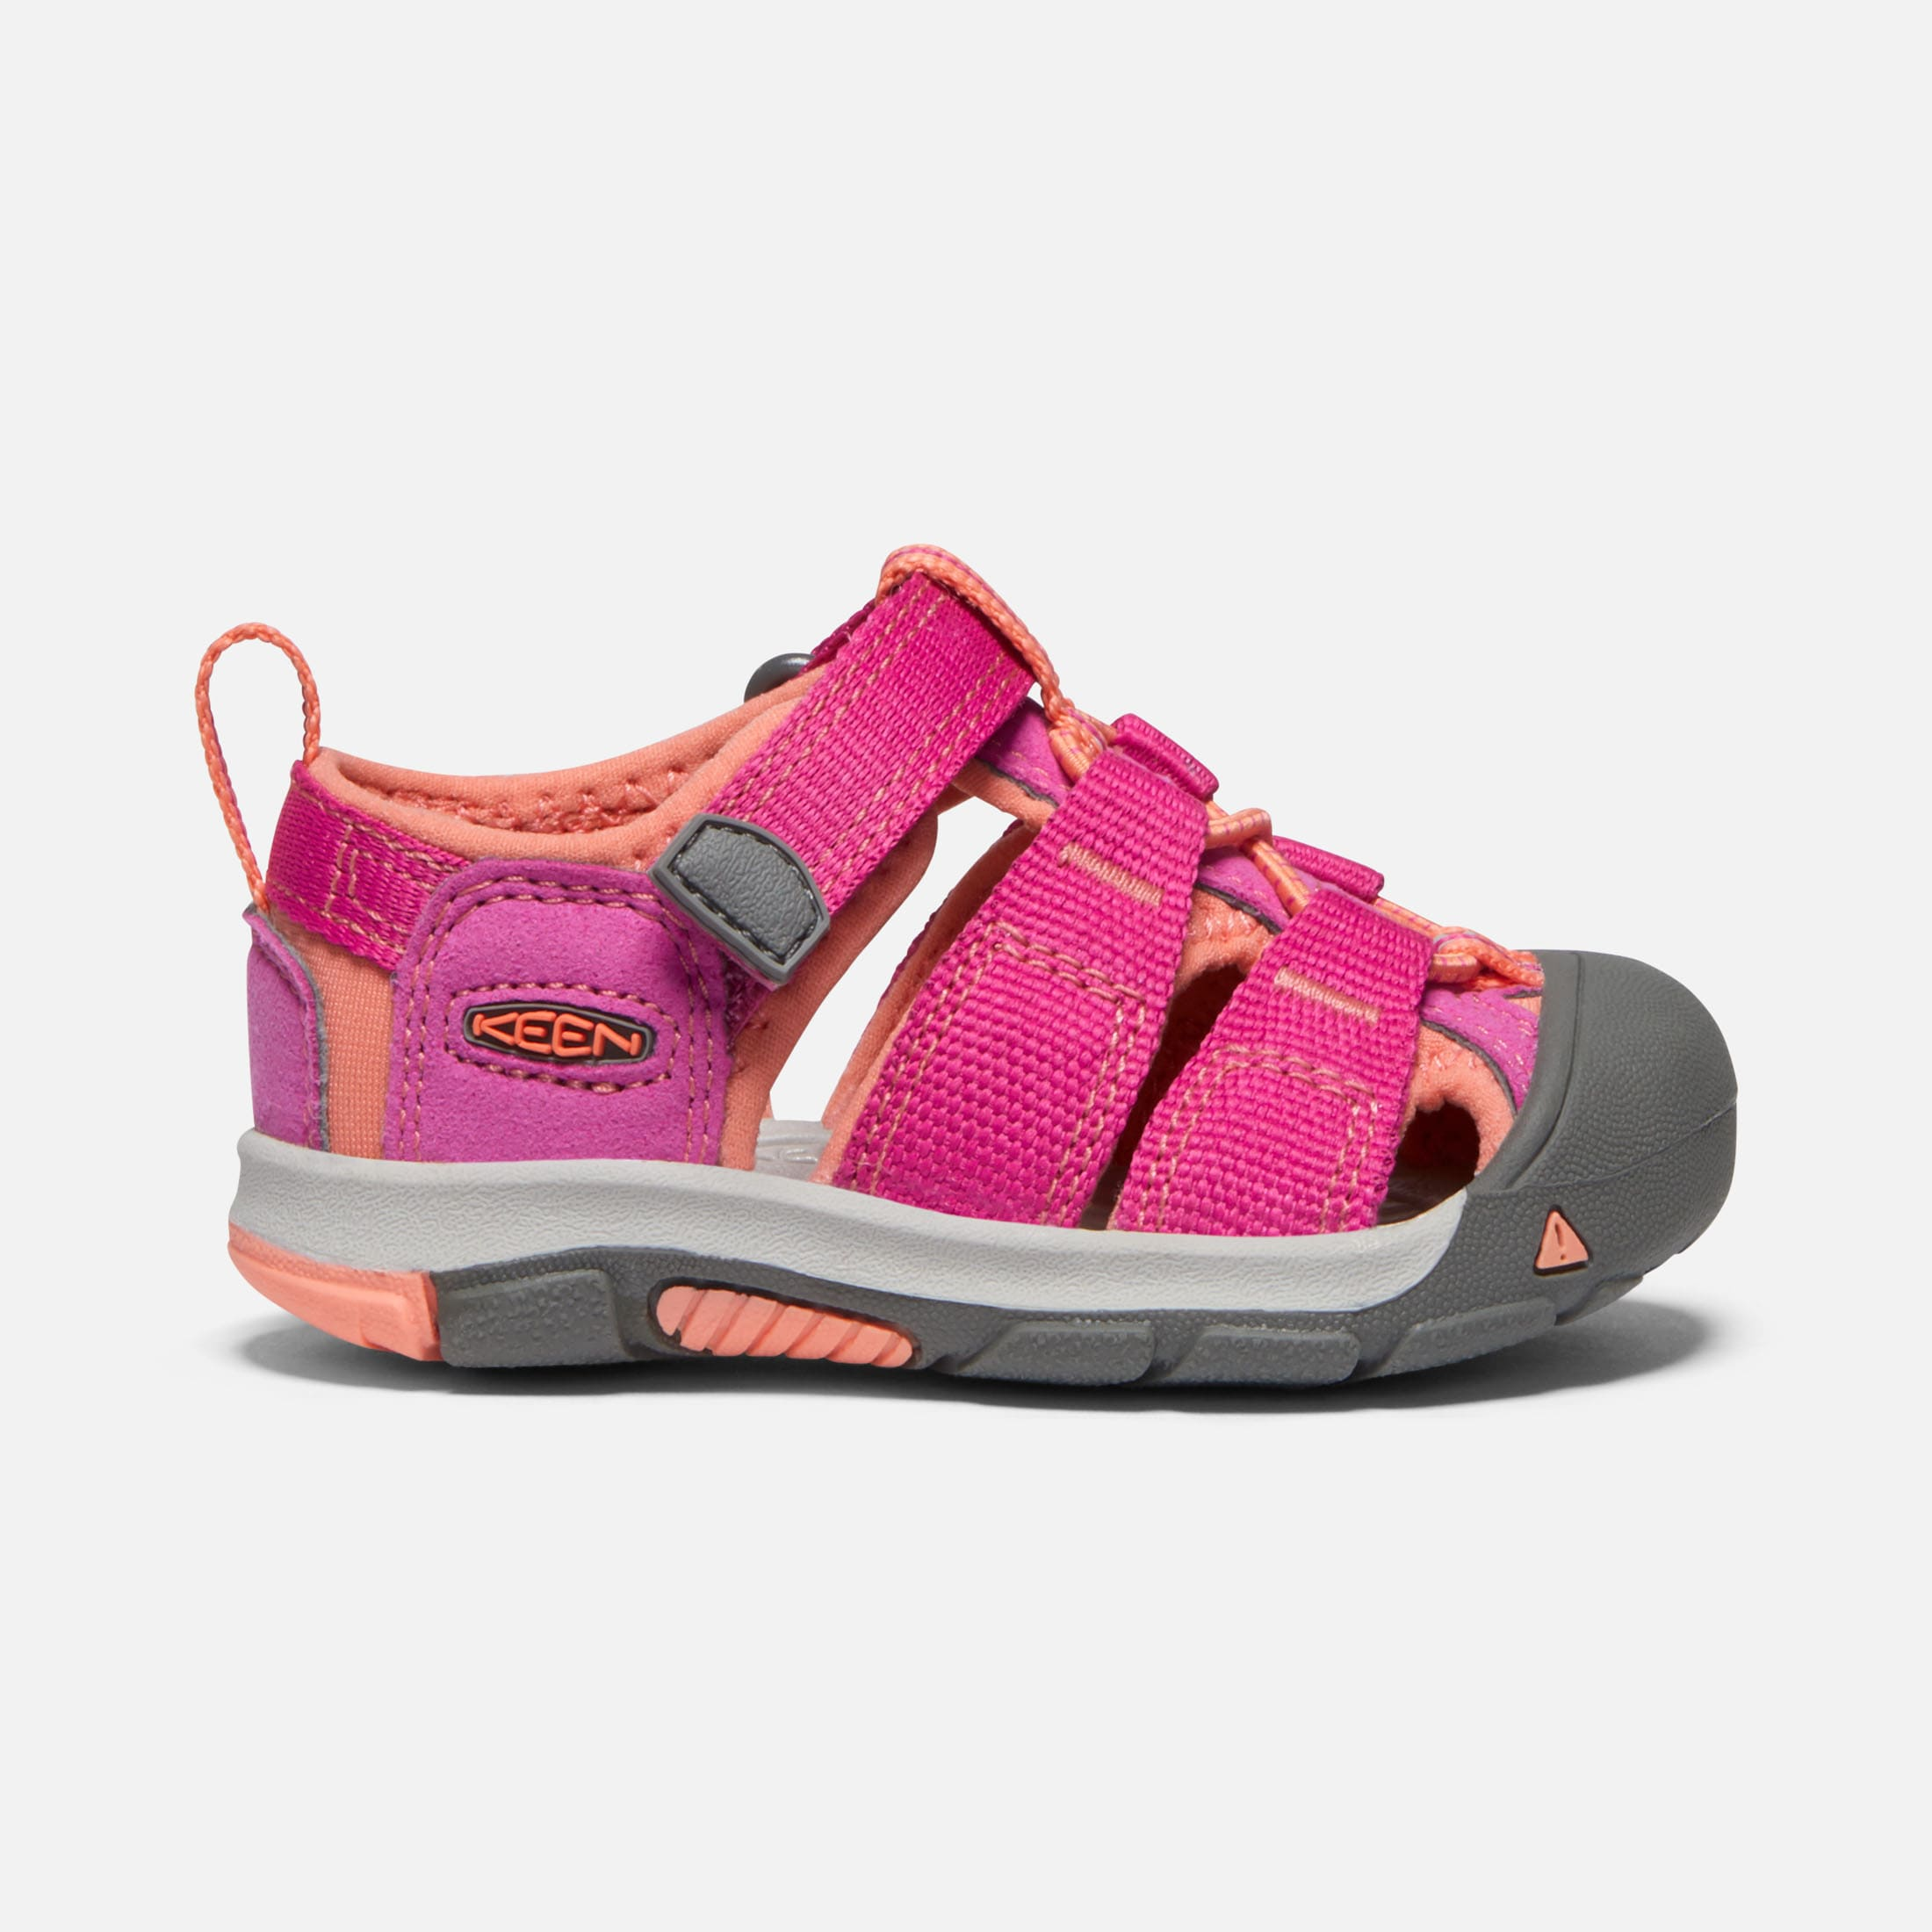 Keen-newport-h2-toddler-very-berry